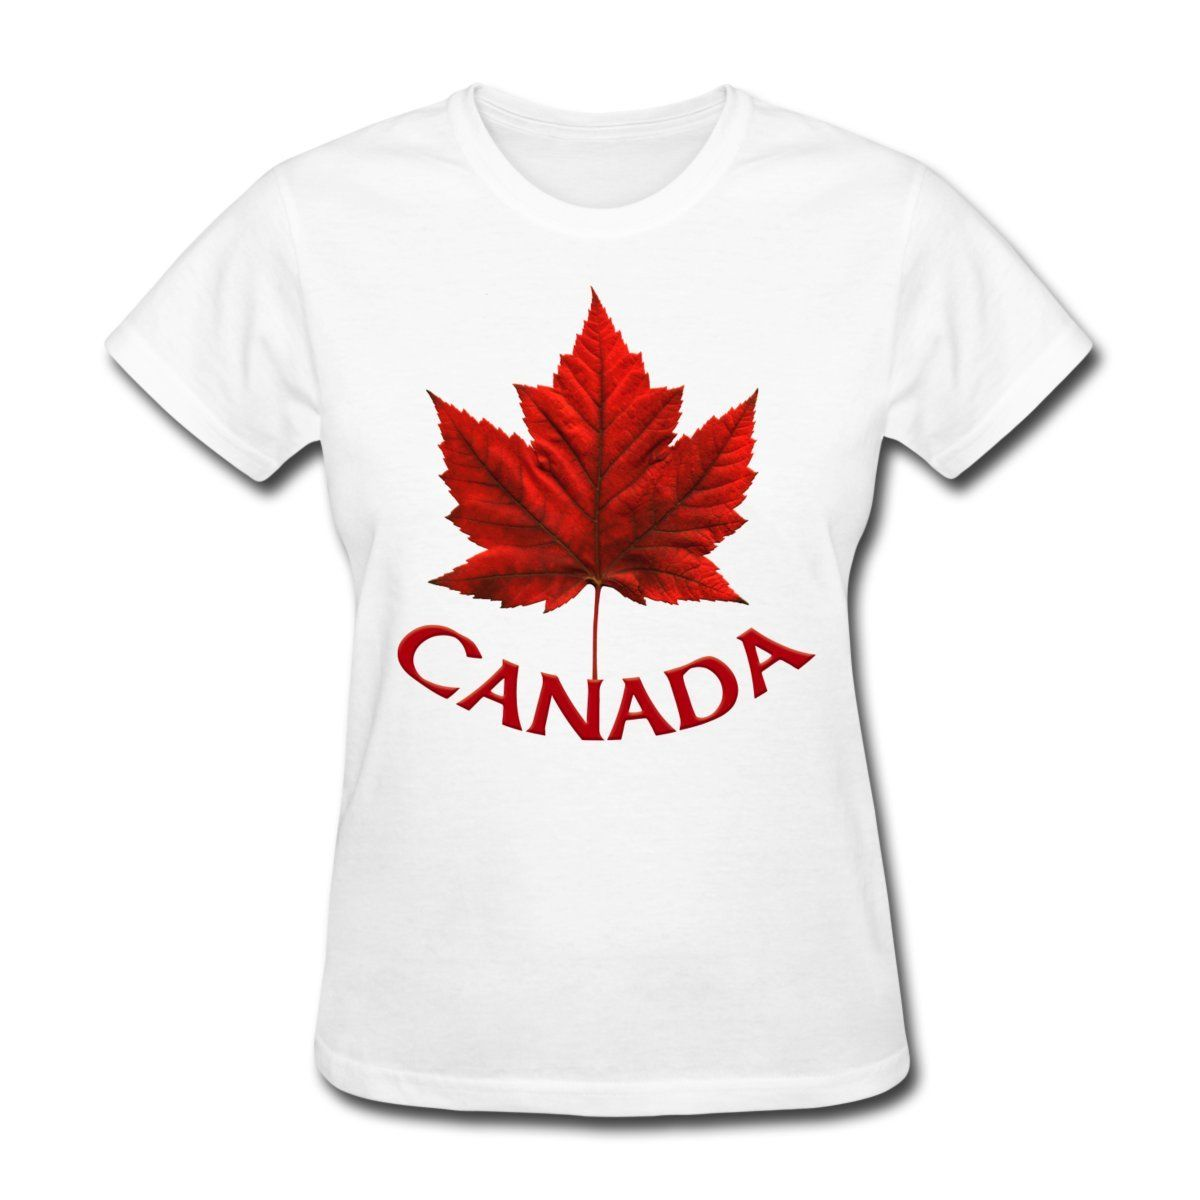 Canada Maple Leaf Womens T Shirt Crew Neck T Shirts Sale -2206